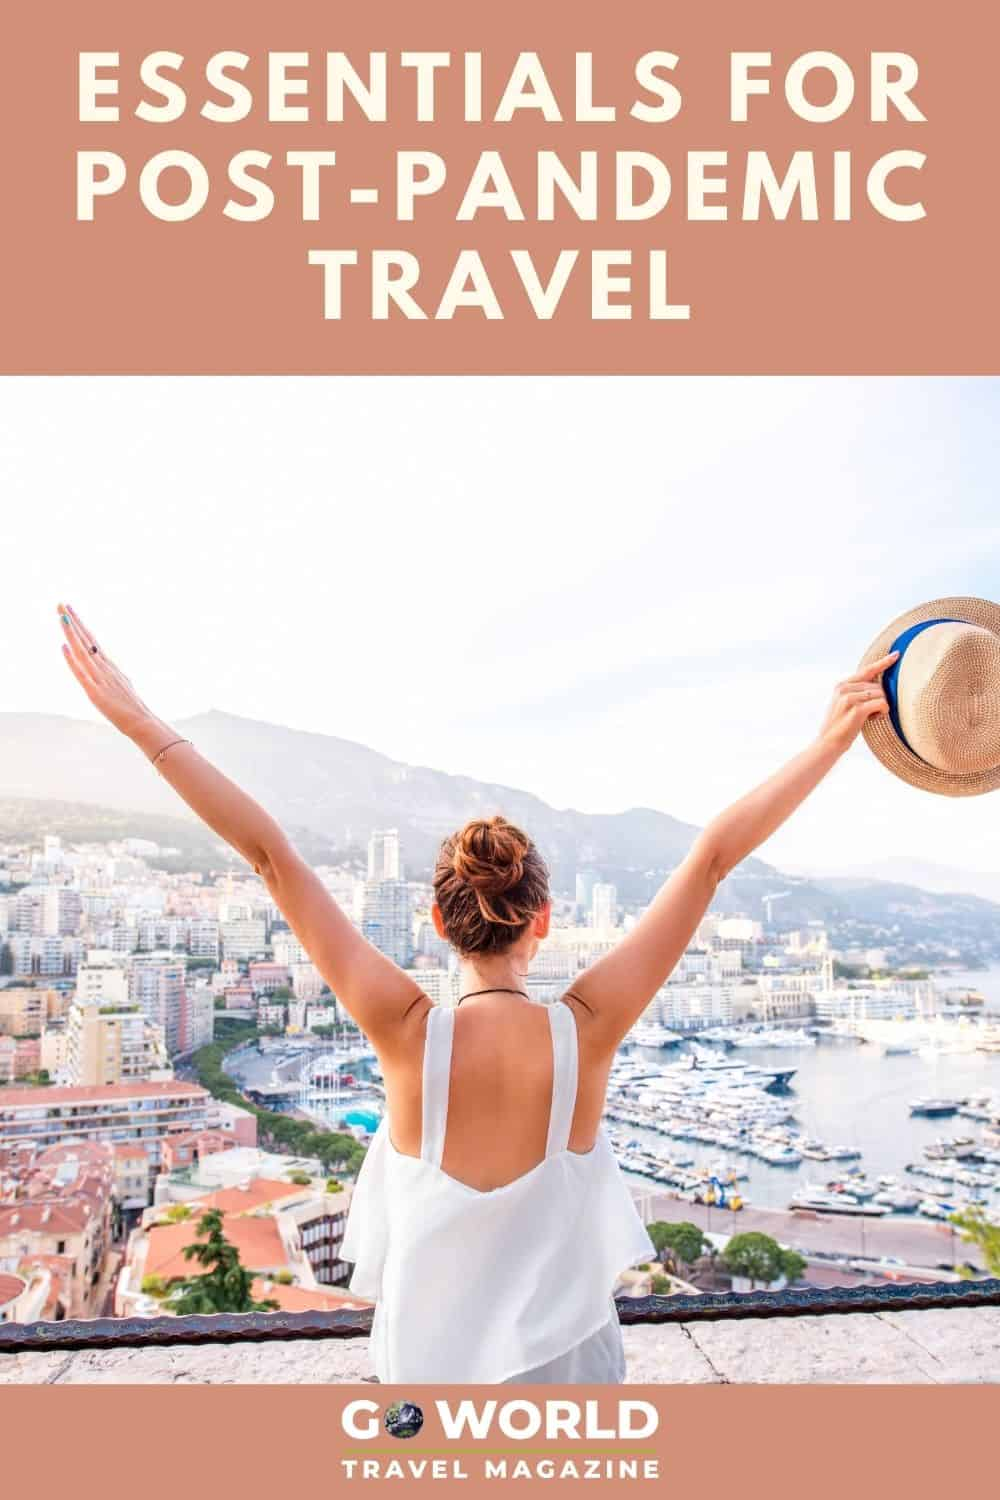 Travel is rebounding quickly, but there are a few things to keep in mind. Here's what you need to know as you plan your post-pandemic travel. #Travelsafety #postpandemictravel #travelhealth